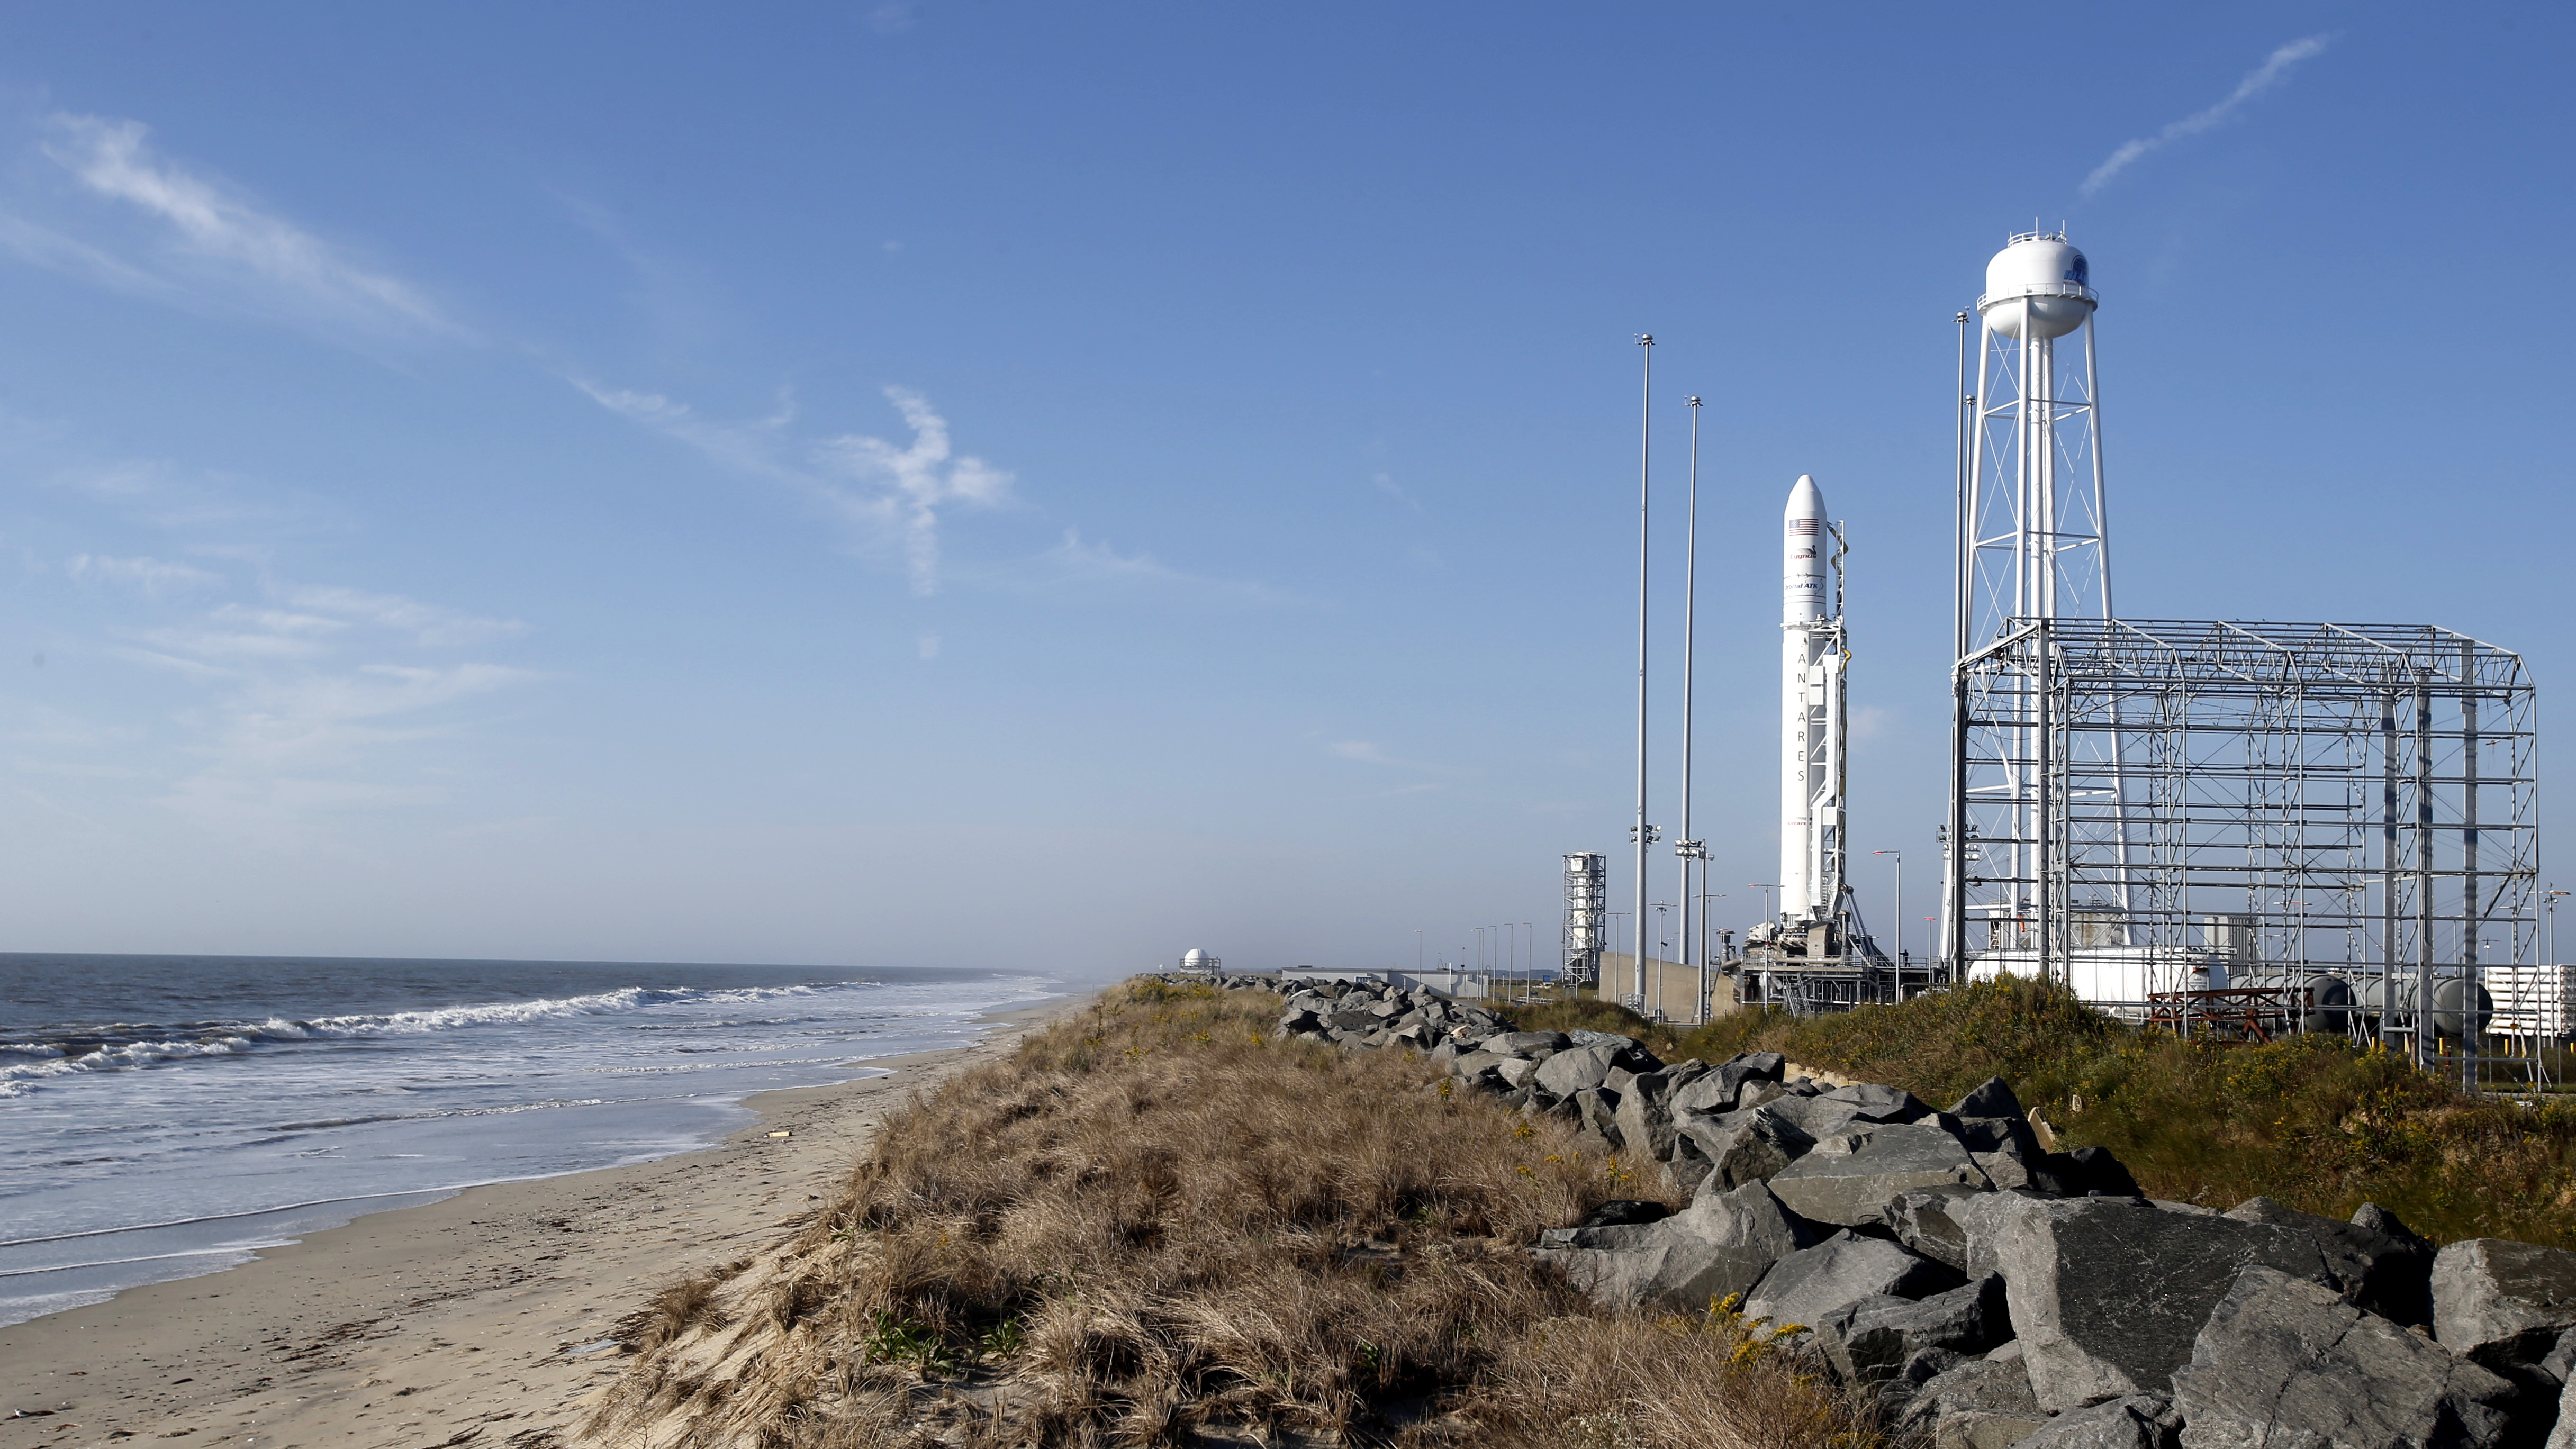 Workers do final preparations for the launch of Orbital ATK Antares rocket at the NASA Wallops Island flight facility in Wallops Island, Va., Monday, Oct. 17, 2016.  The rocket is carrying 5,100 lbs of supplies to the International Space Station.  The launch is scheduled to take place at 7:40PM Monday evening.